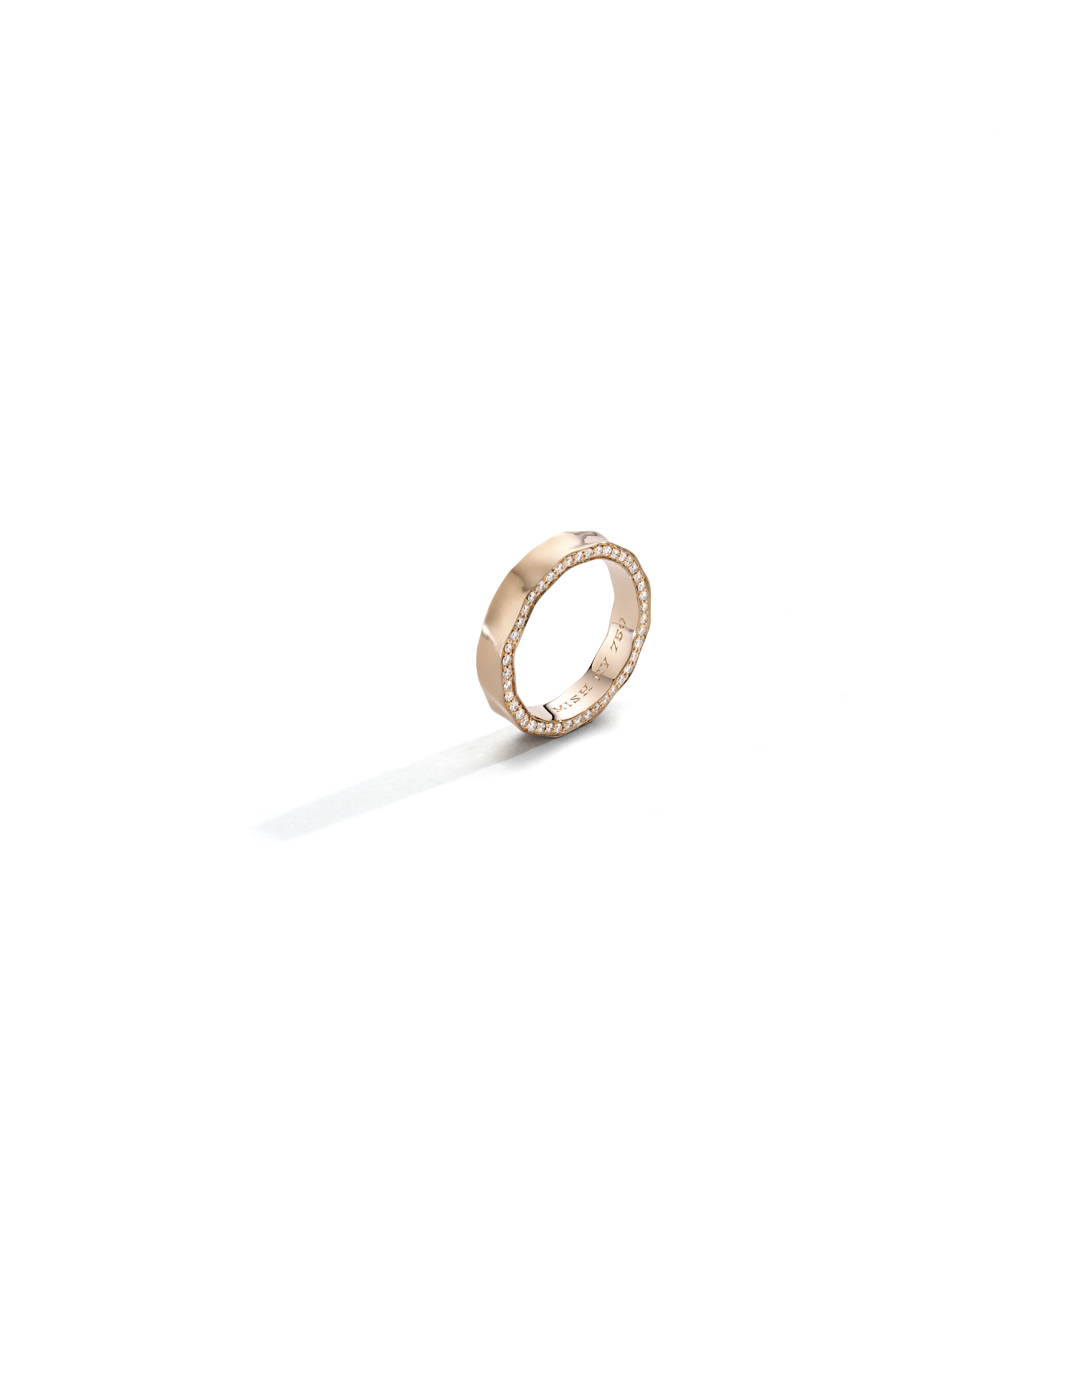 mish_products_rings_BondBow